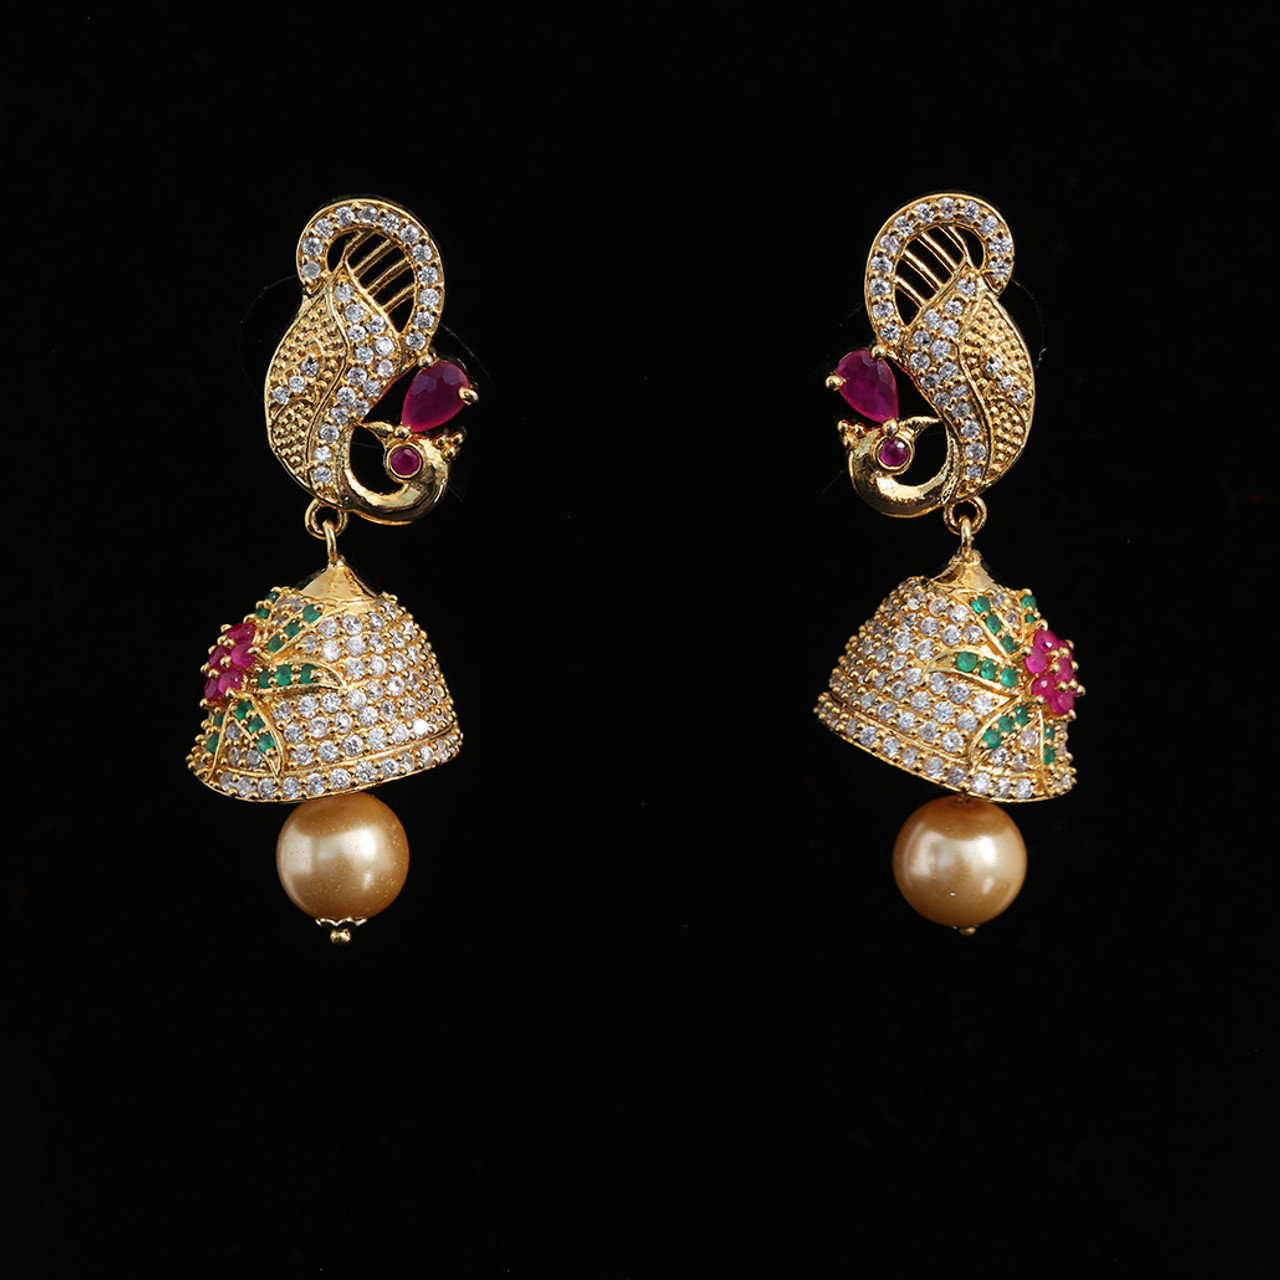 22k Gold Plated Jhumka Jumki Peacock Drop Earrings Ethnic Bridal